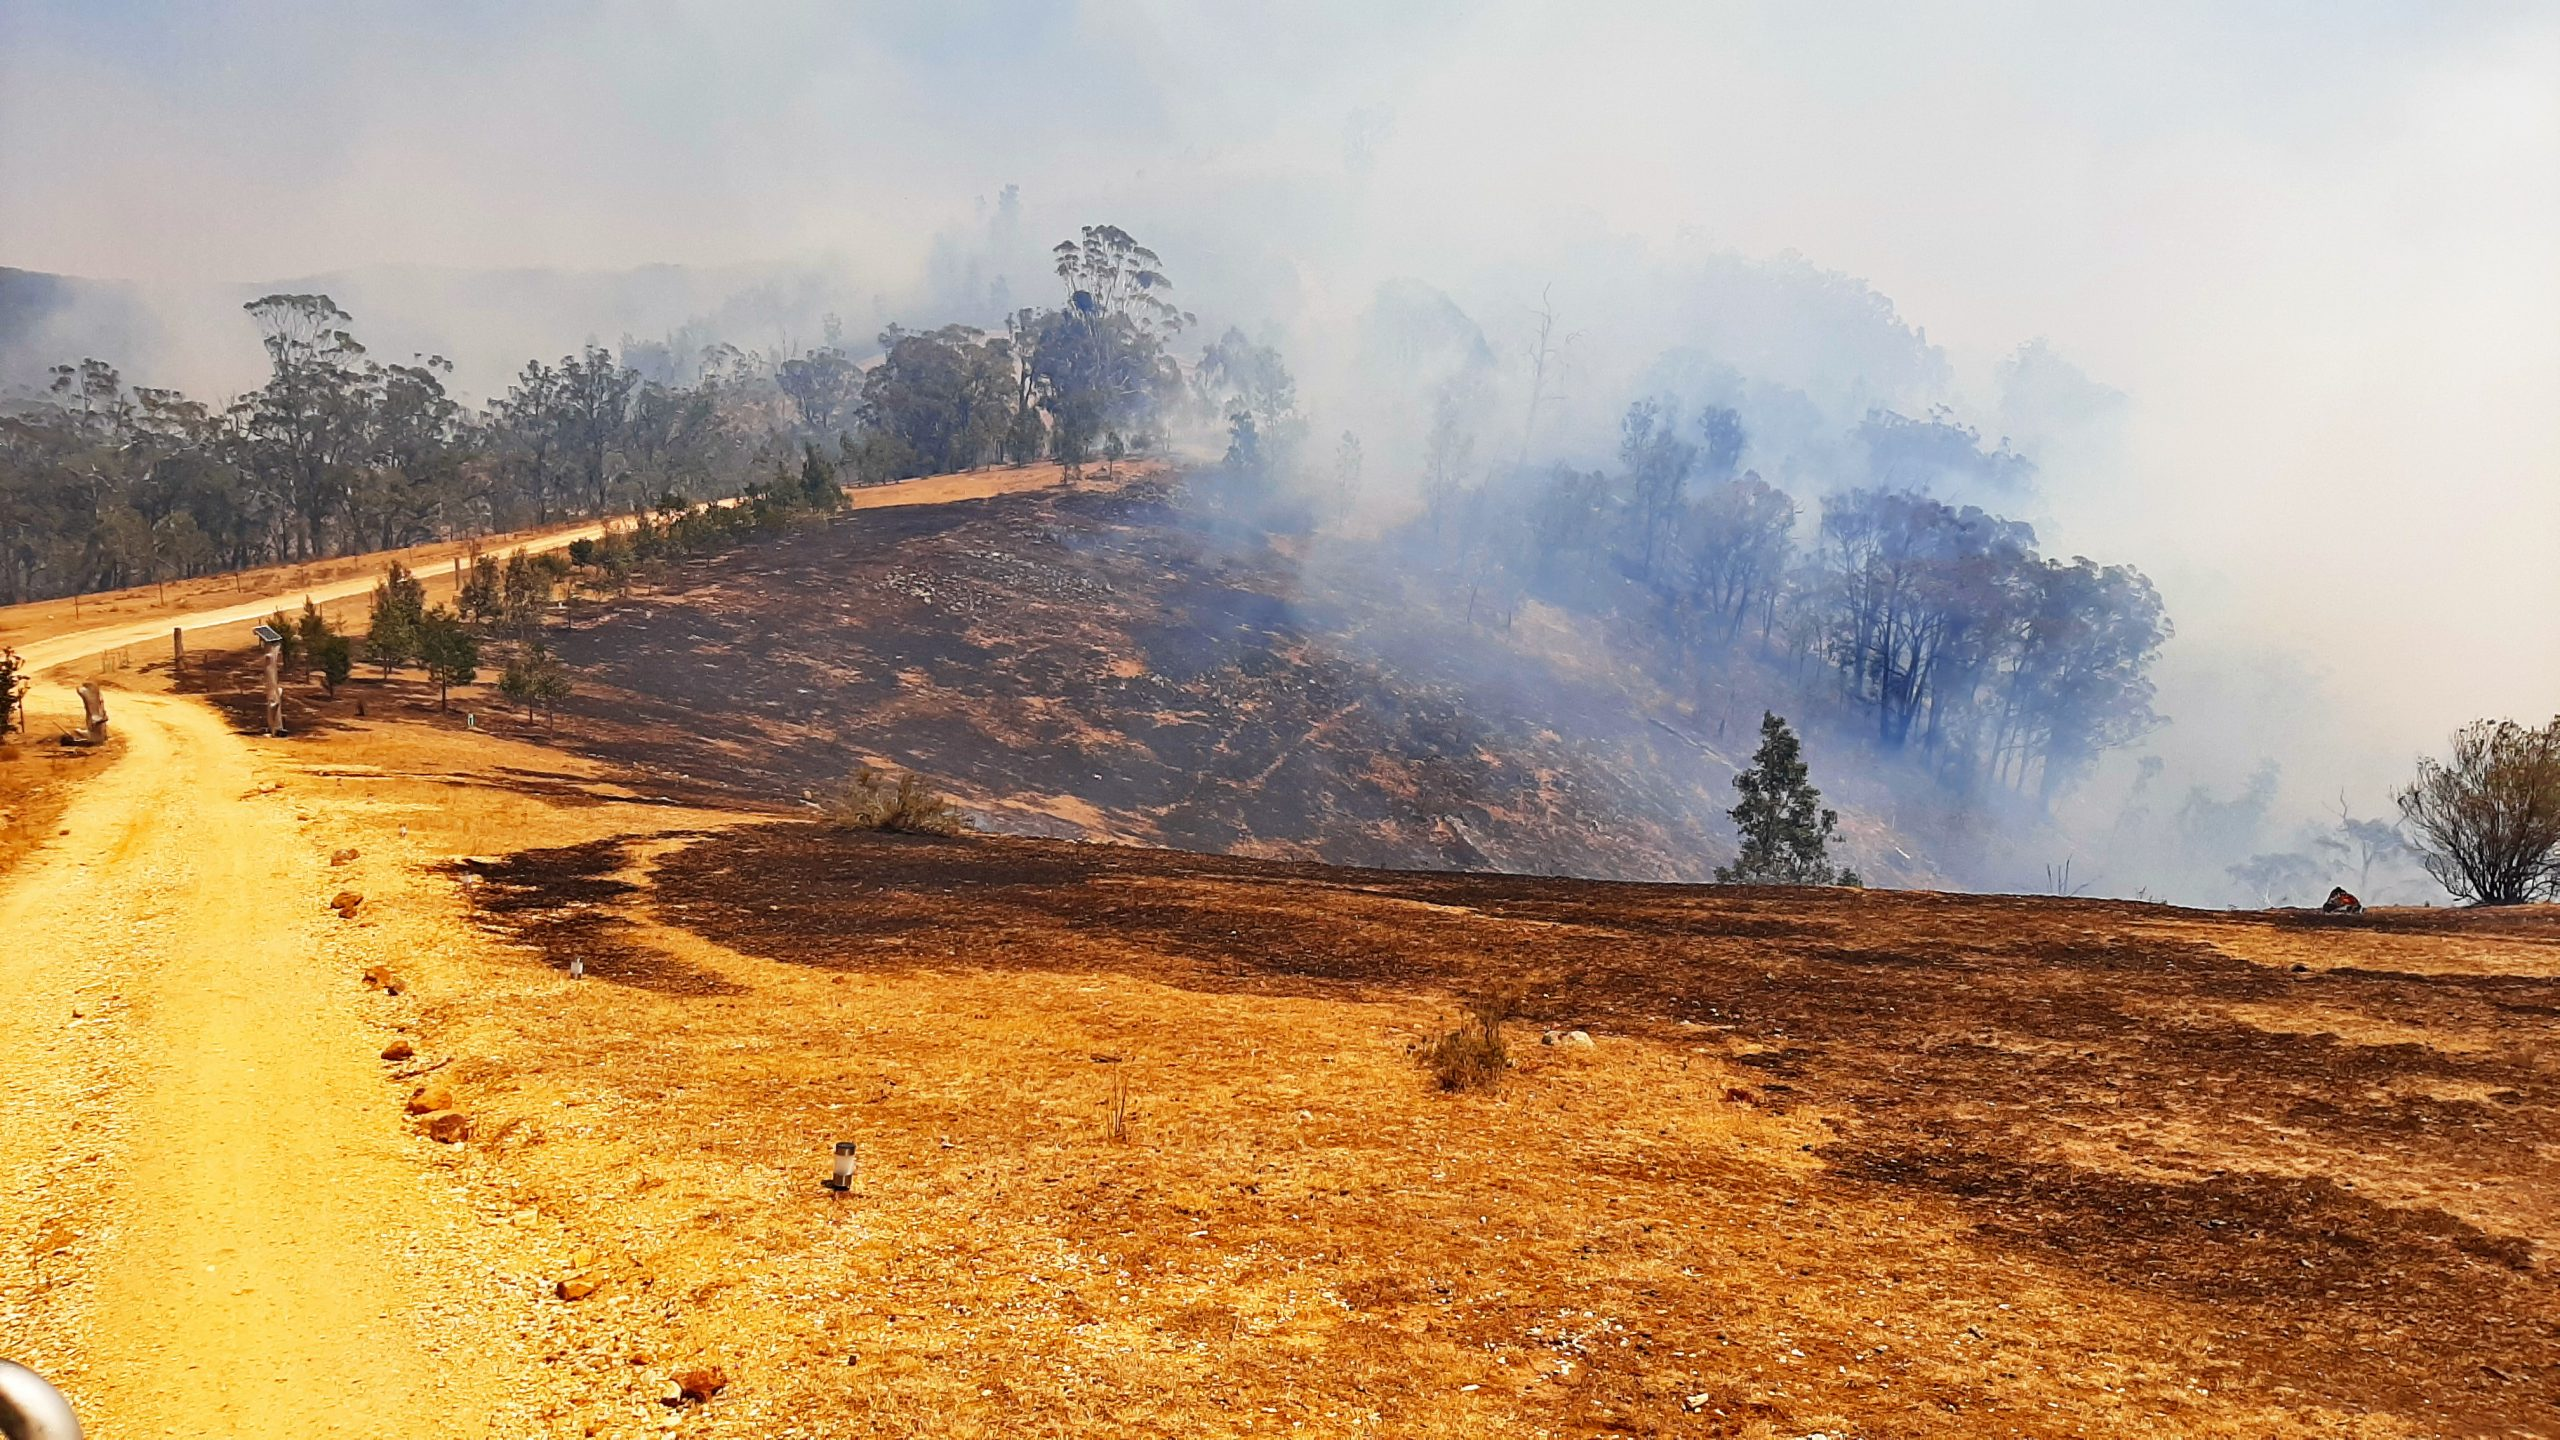 A burned landscape in New South Wales.